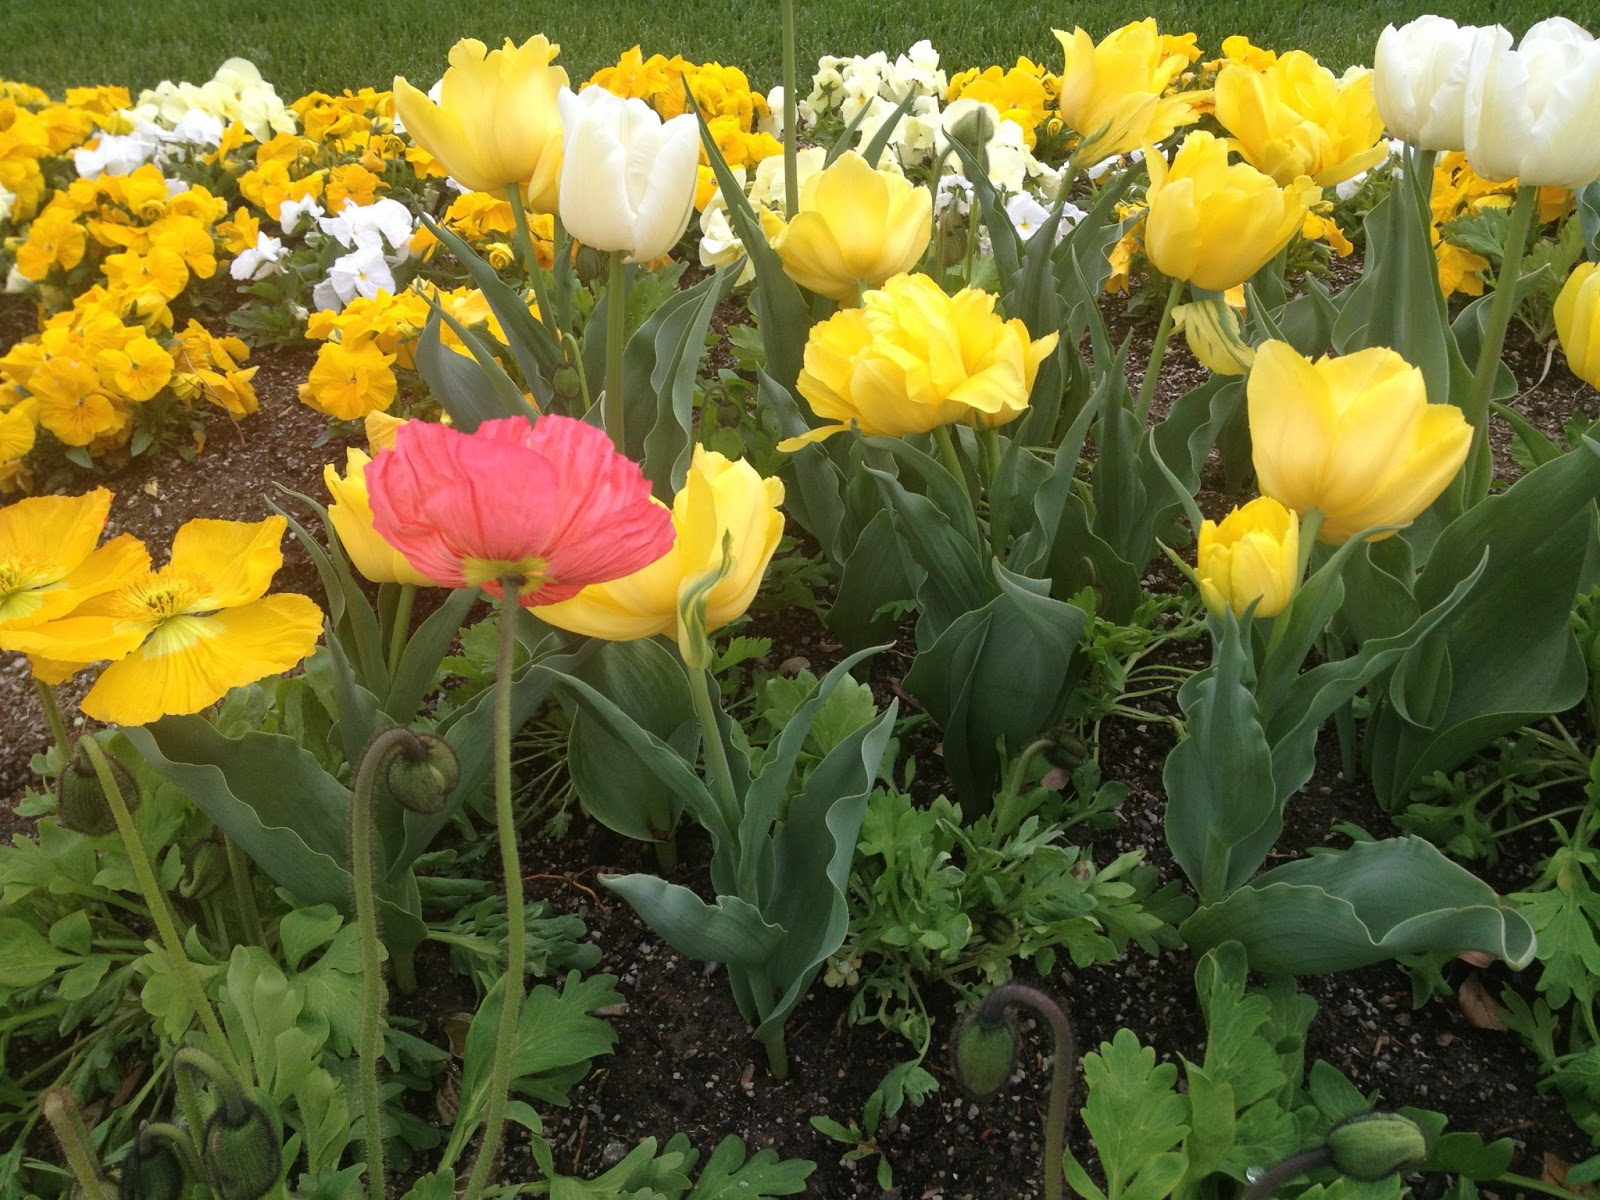 image of yellow tulips